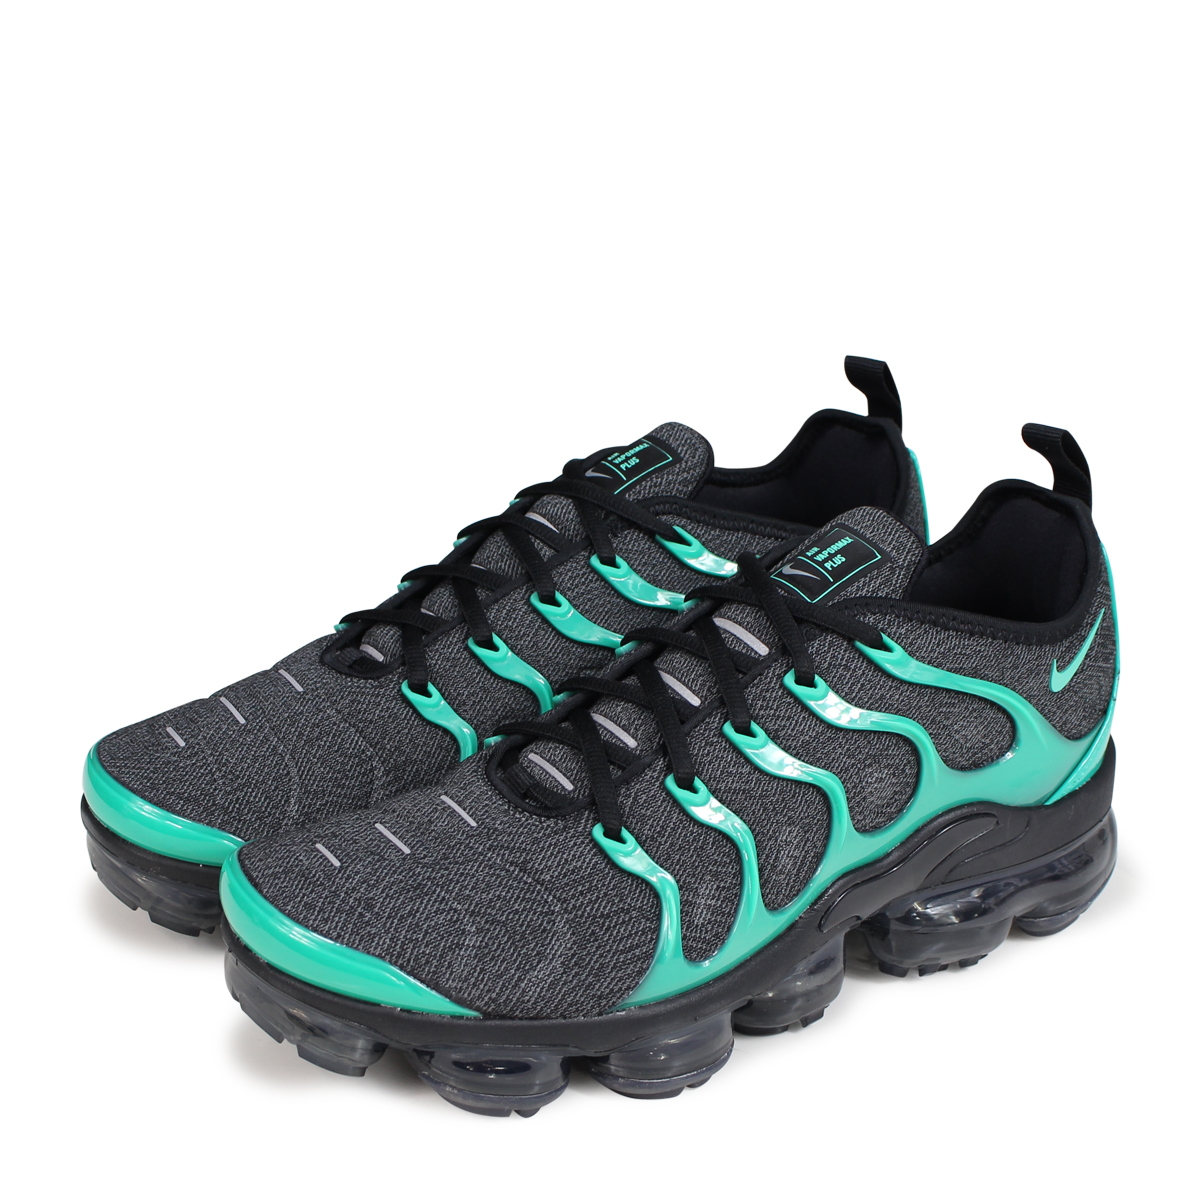 online store 6ef1a 68431 Nike NIKE air vapor max plus sneakers men AIR VAPORMAX PLUS 924,453-013  black [189]